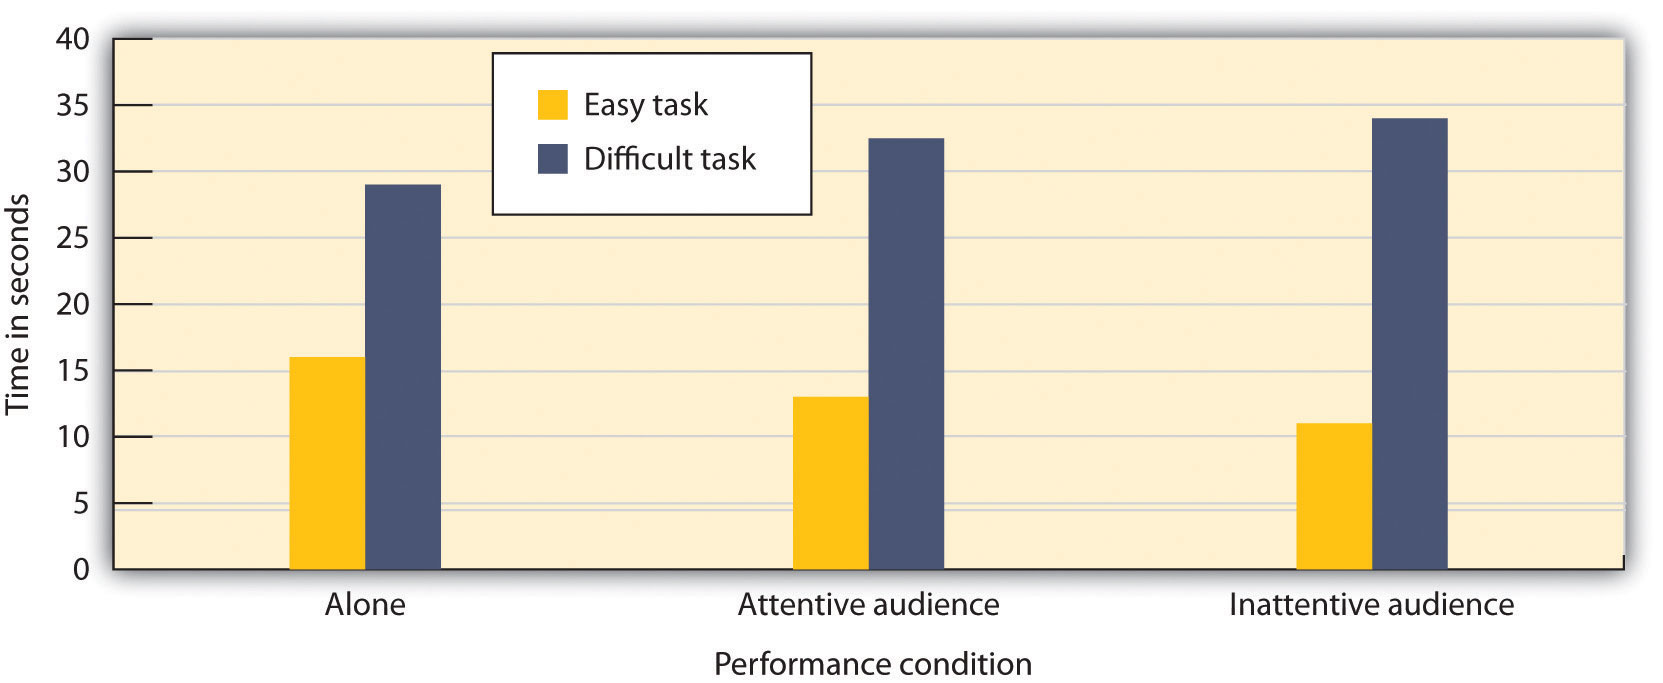 In this experiment, participants were asked to perform a well-learned task (tying their shoes) and a poorly learned task (putting on a lab coat that tied in the back). There is both a main effect of task difficulty and a task-difficulty-by-performance-condition interaction.